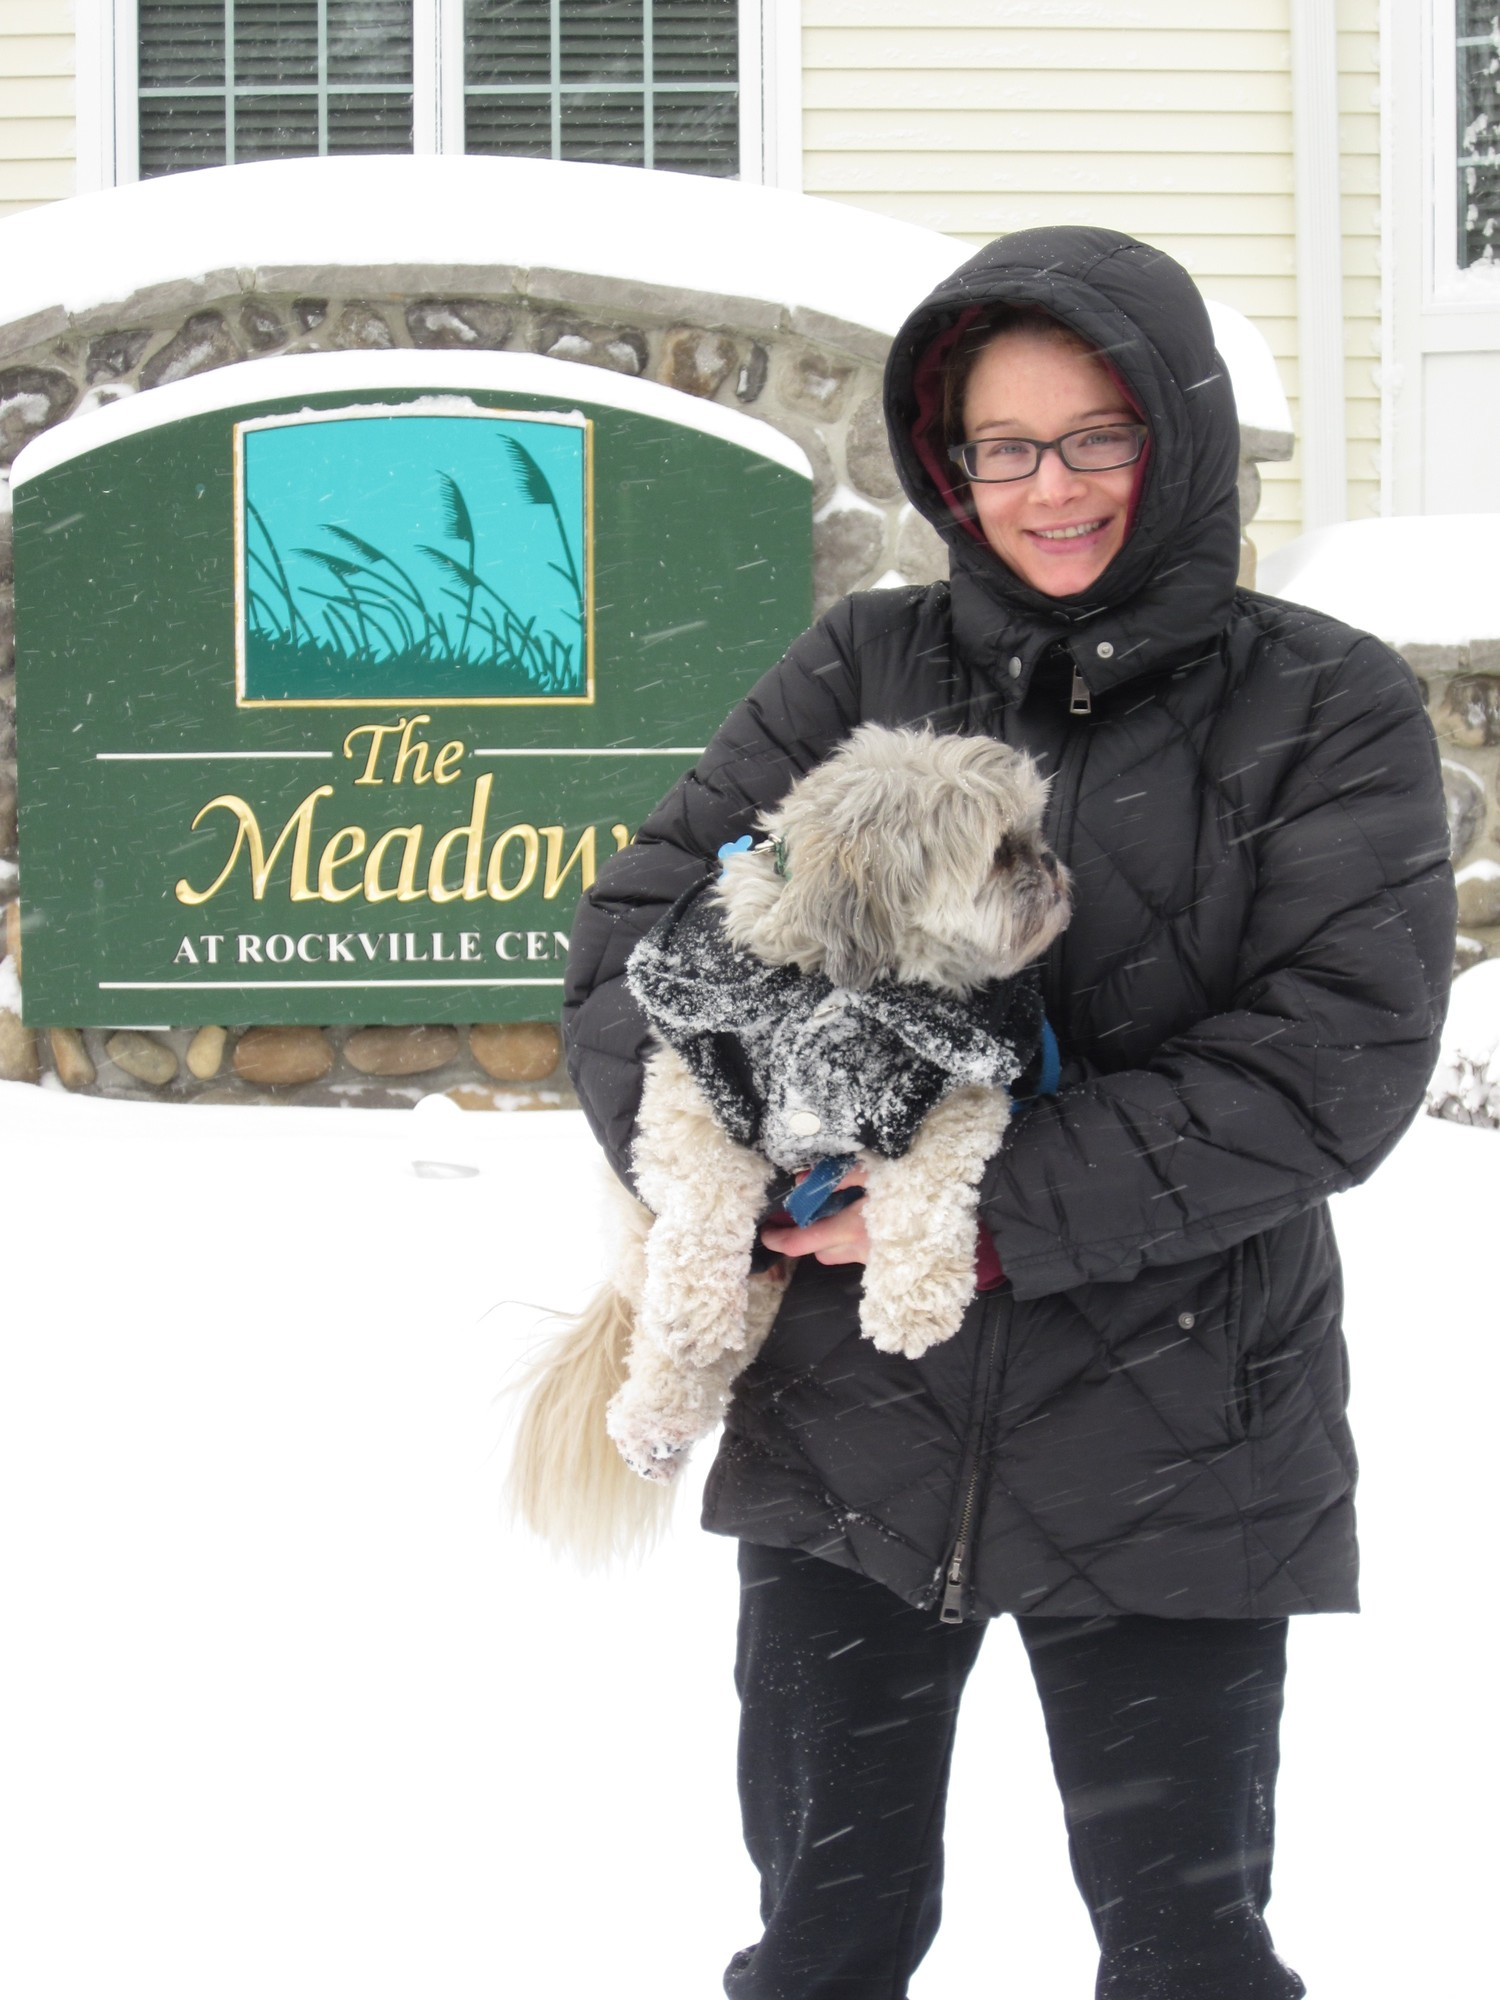 Melissa Gusuinov was out in the morning trying to find a cleared area so she could walk her dog, Phil.